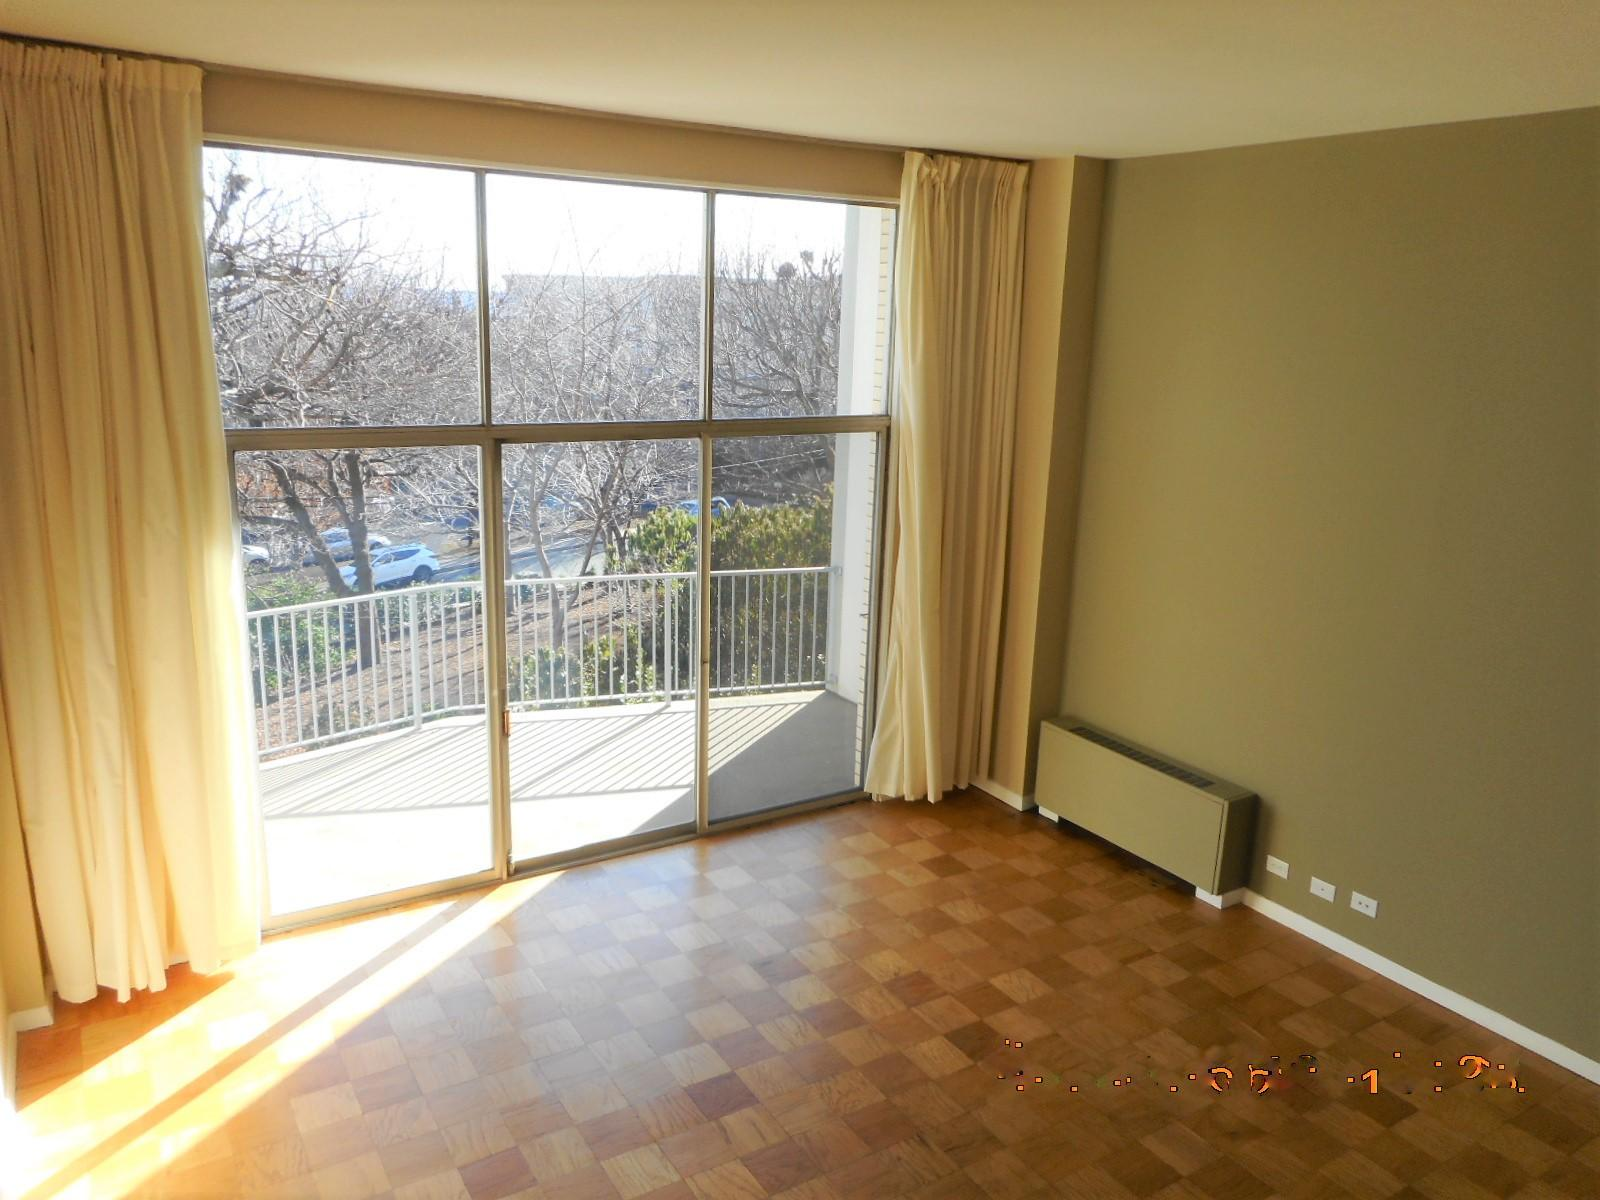 Apartment for Rent at 1200 Nash St #243 1200 Nash St #243 Arlington, Virginia 22209 United States